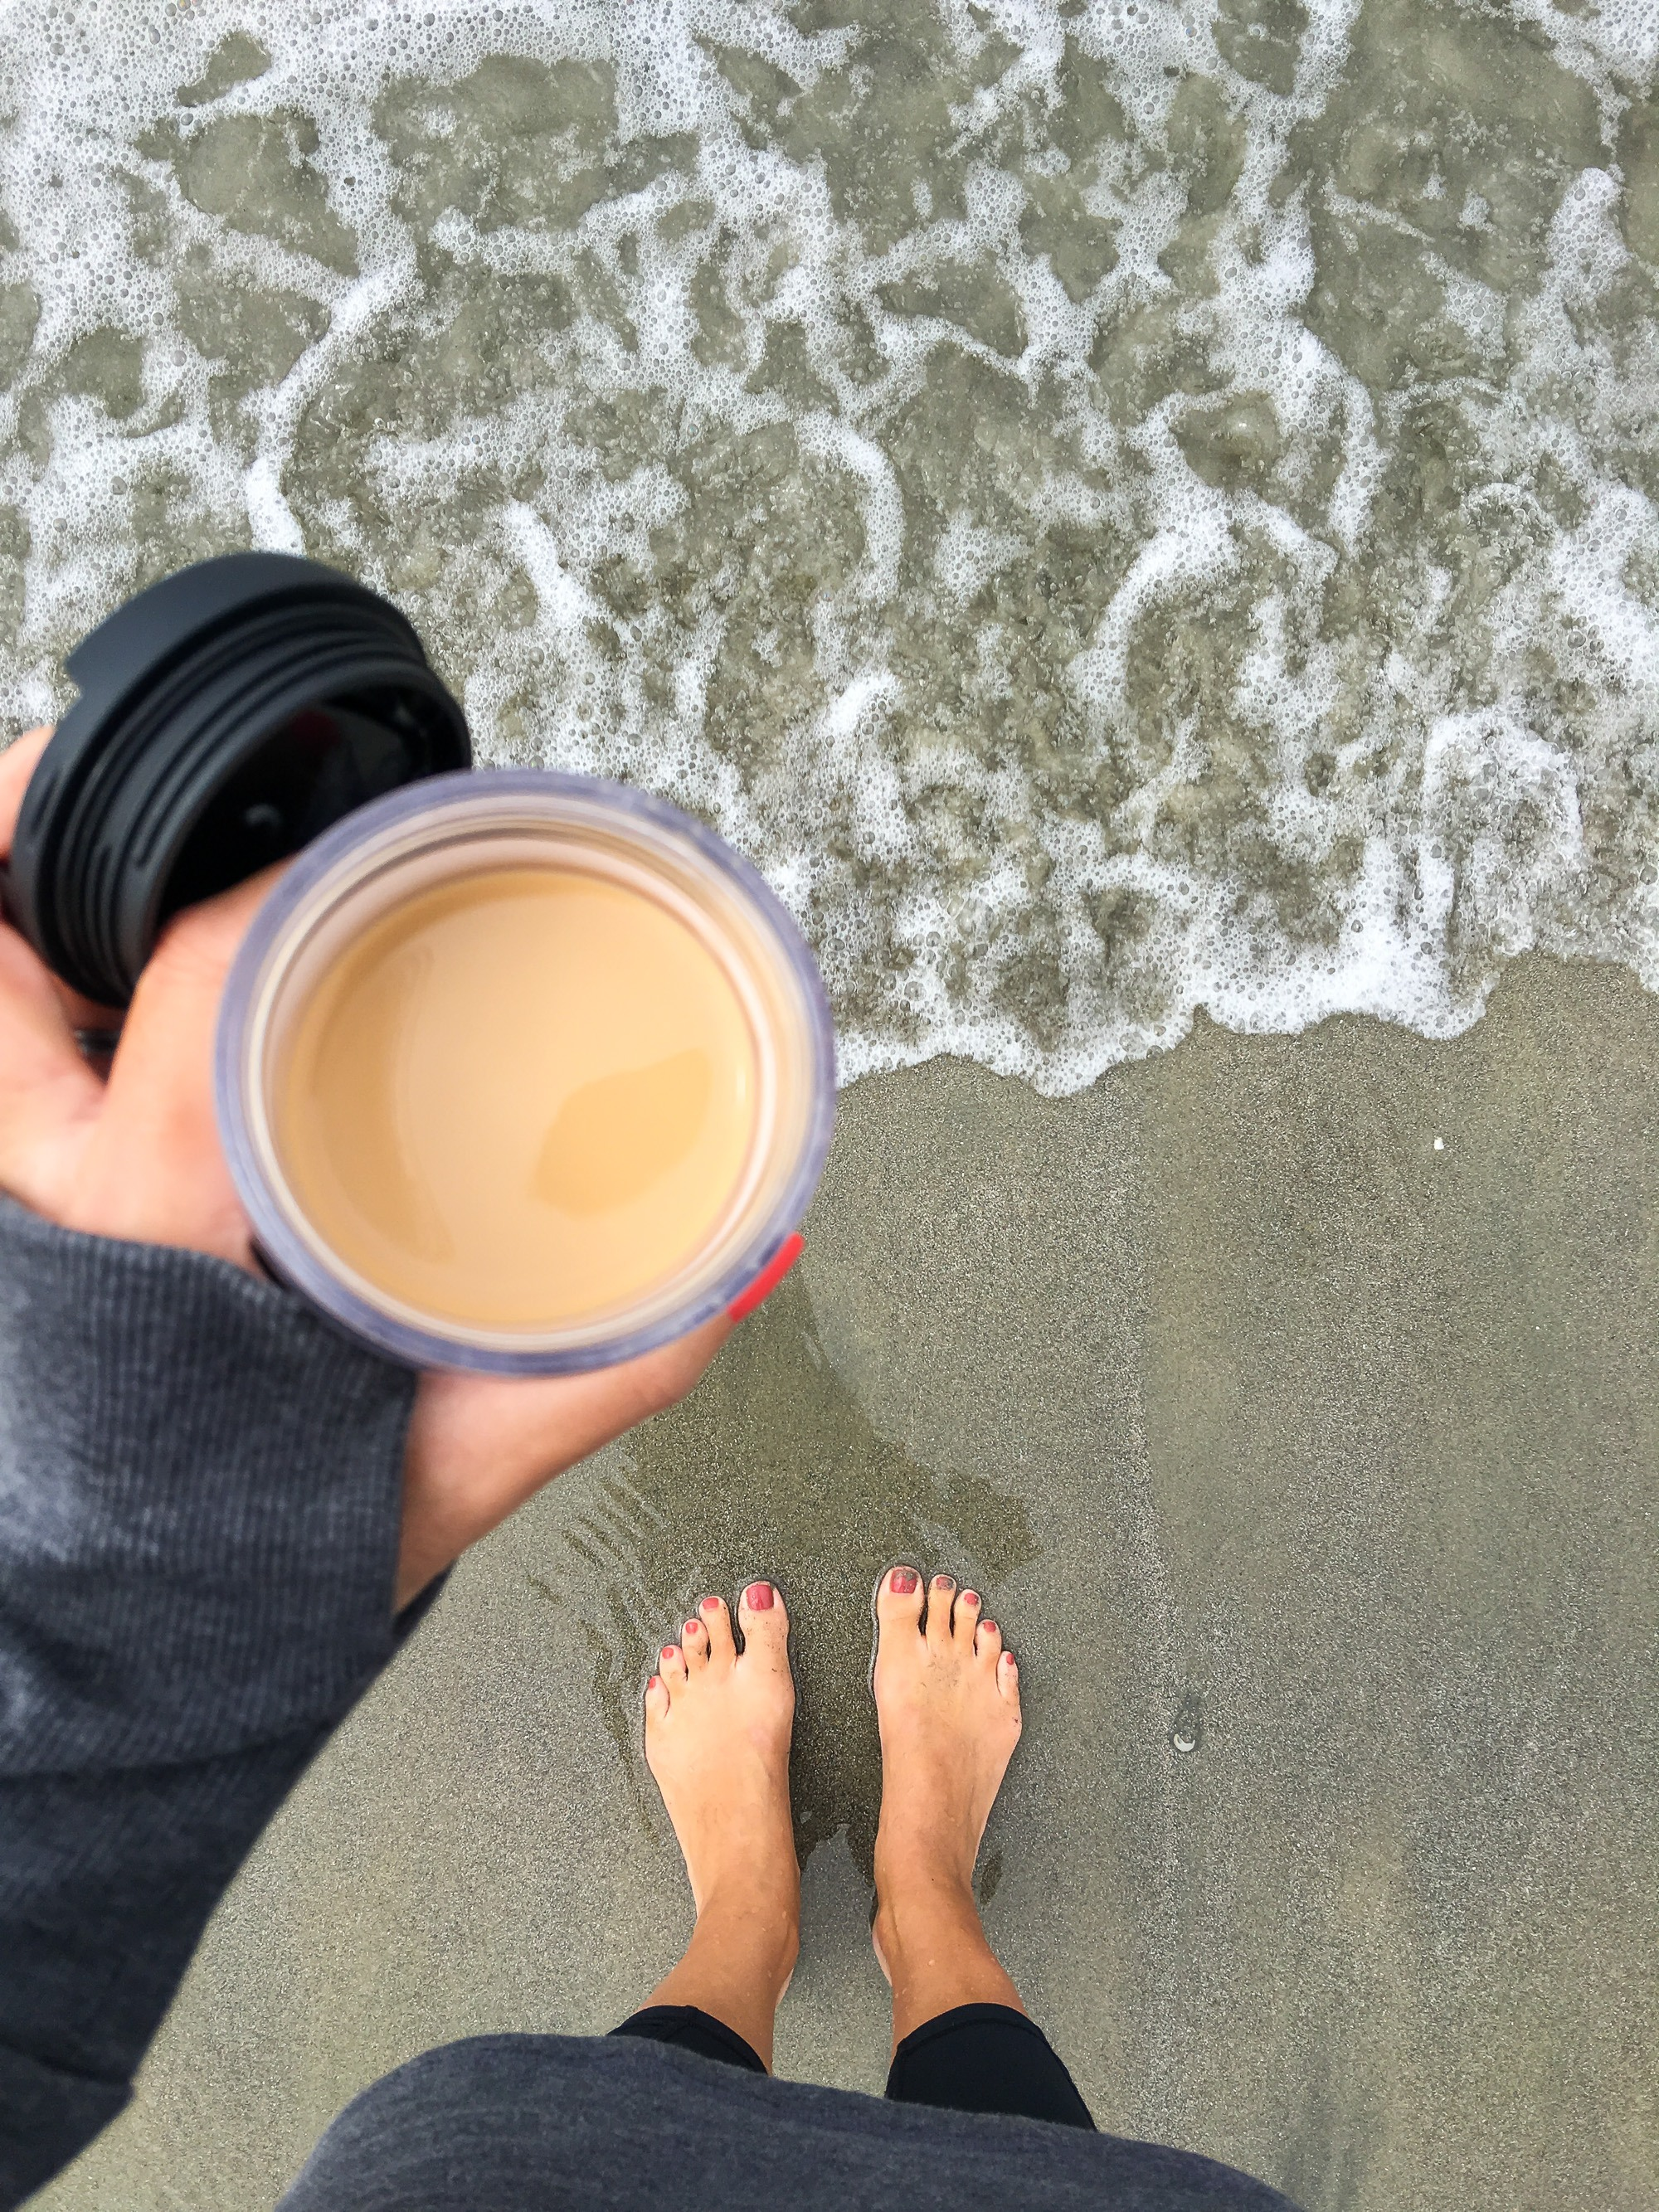 Take a Starbucks Pumpkin Spice Caffe Latte made with a K-Cup® pod to the beach.